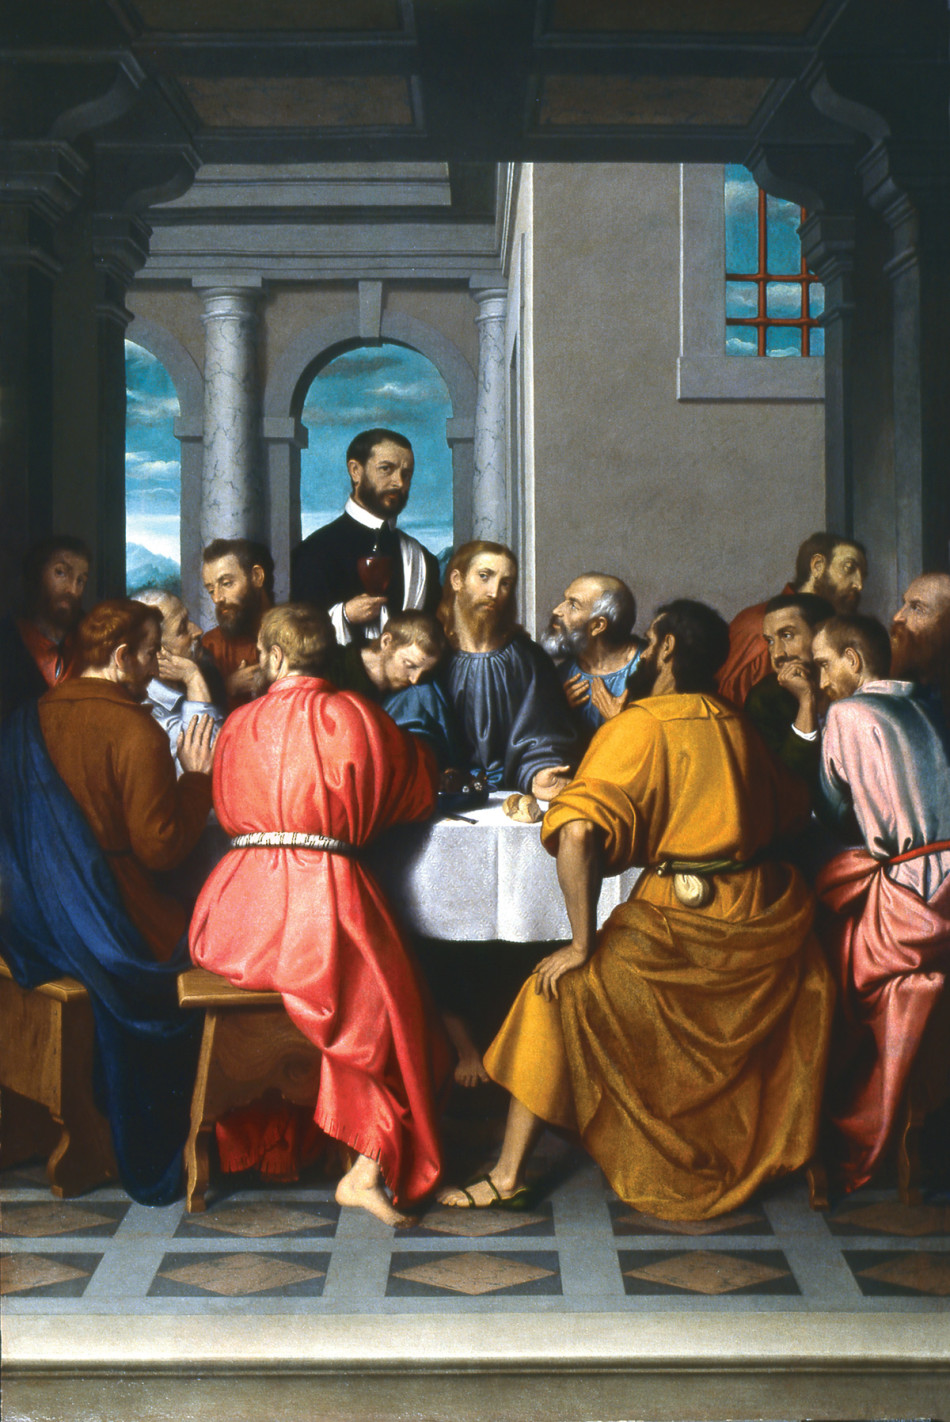 Moroni – Last Supper on show in Royal Academy